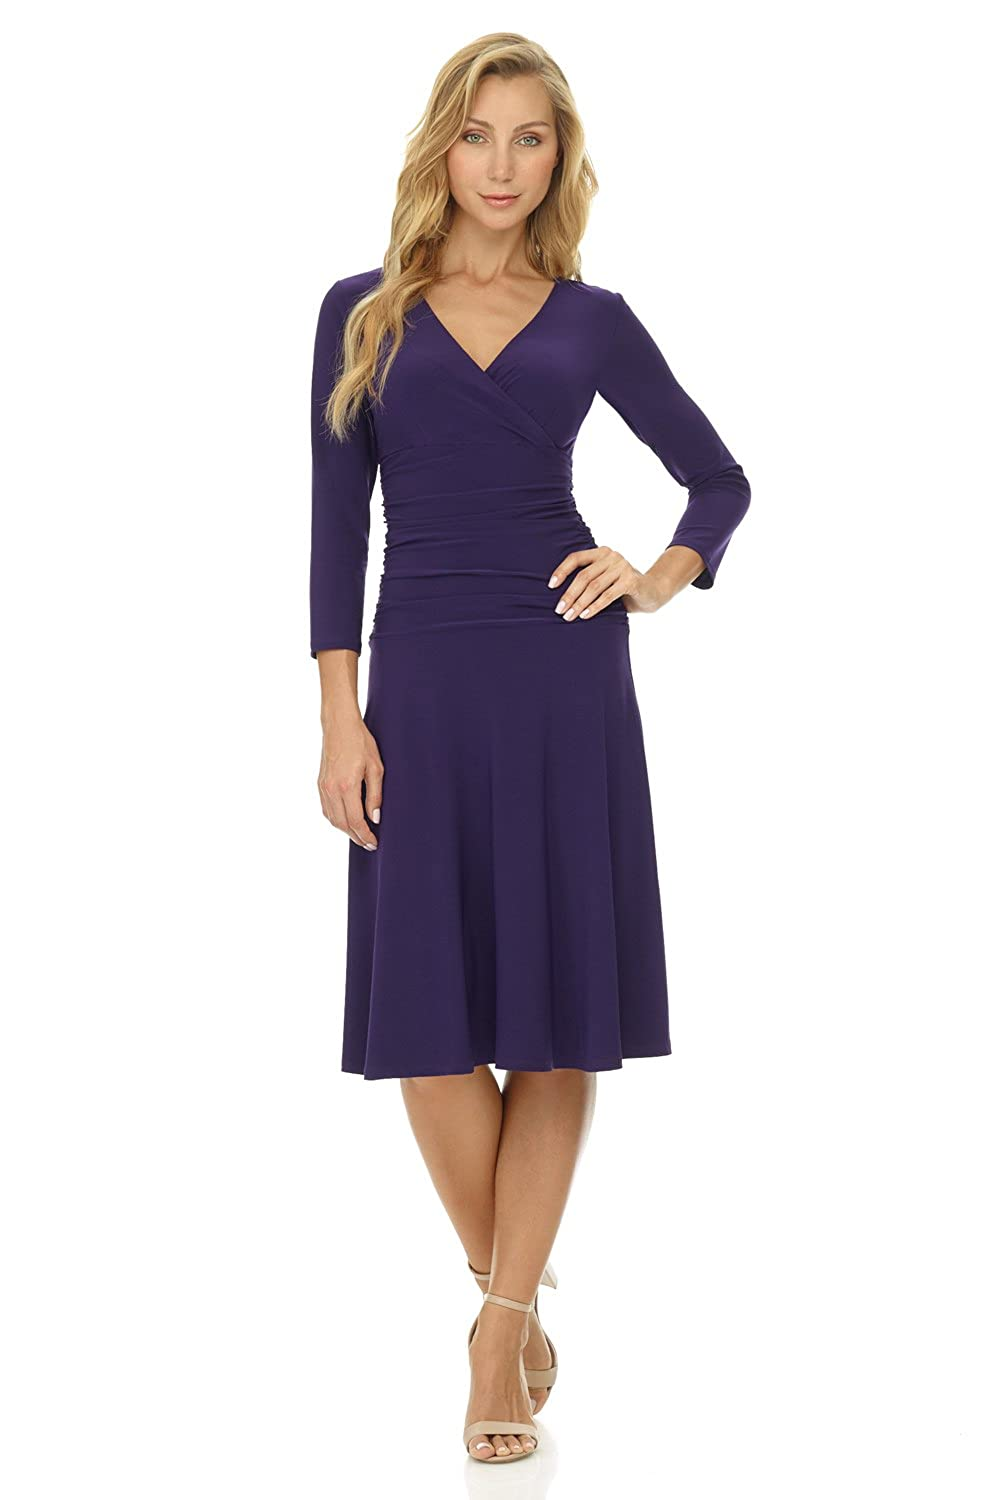 a66d37ef70 Rekucci Women s Slimming 3 4 Sleeve Fit-and-Flare Crossover Tummy Control  Dress at Amazon Women s Clothing store